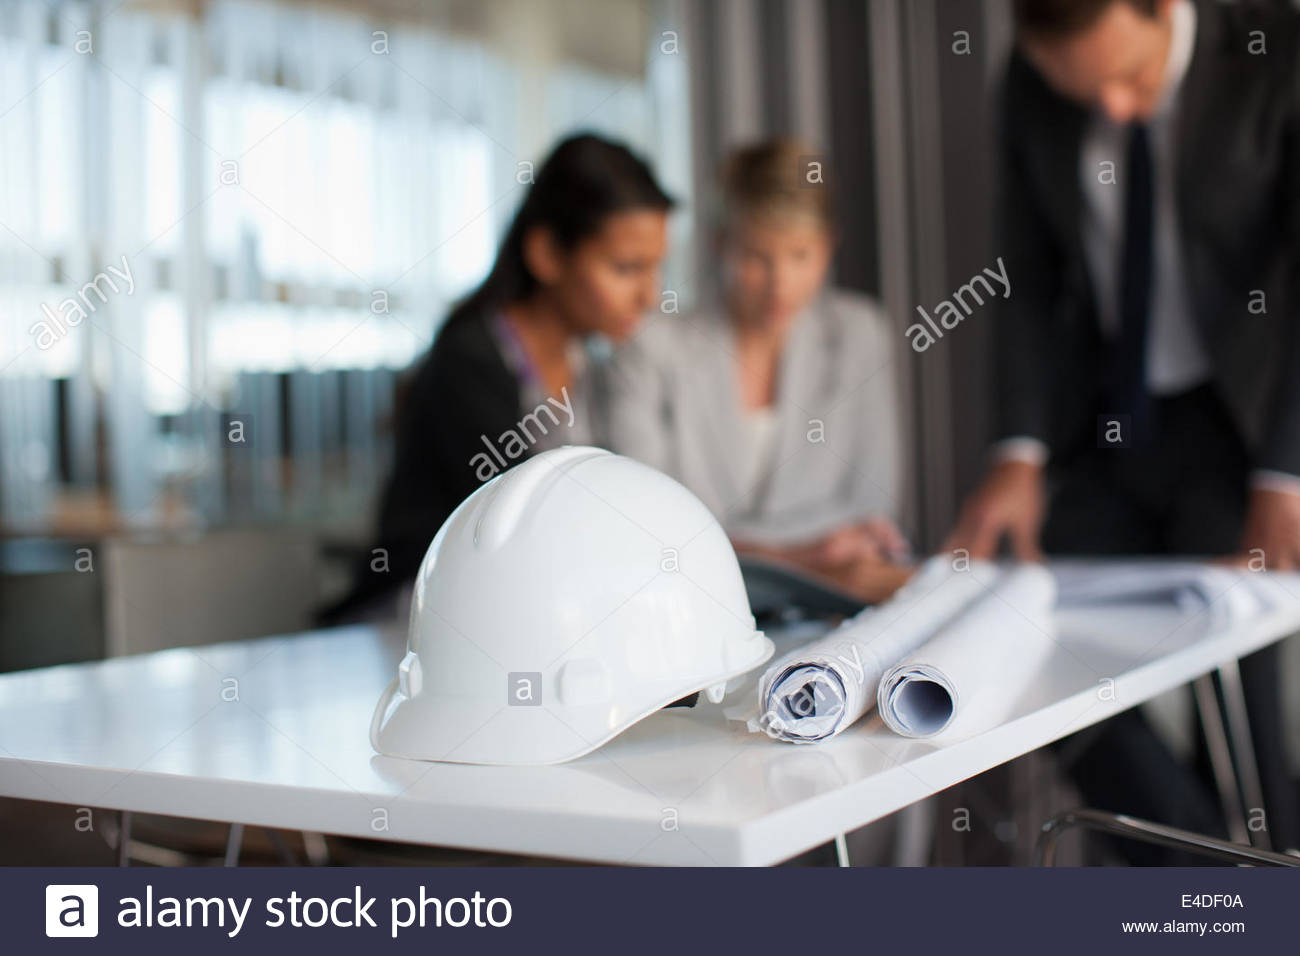 Business people reviewing blueprints in conference room - Stock Image